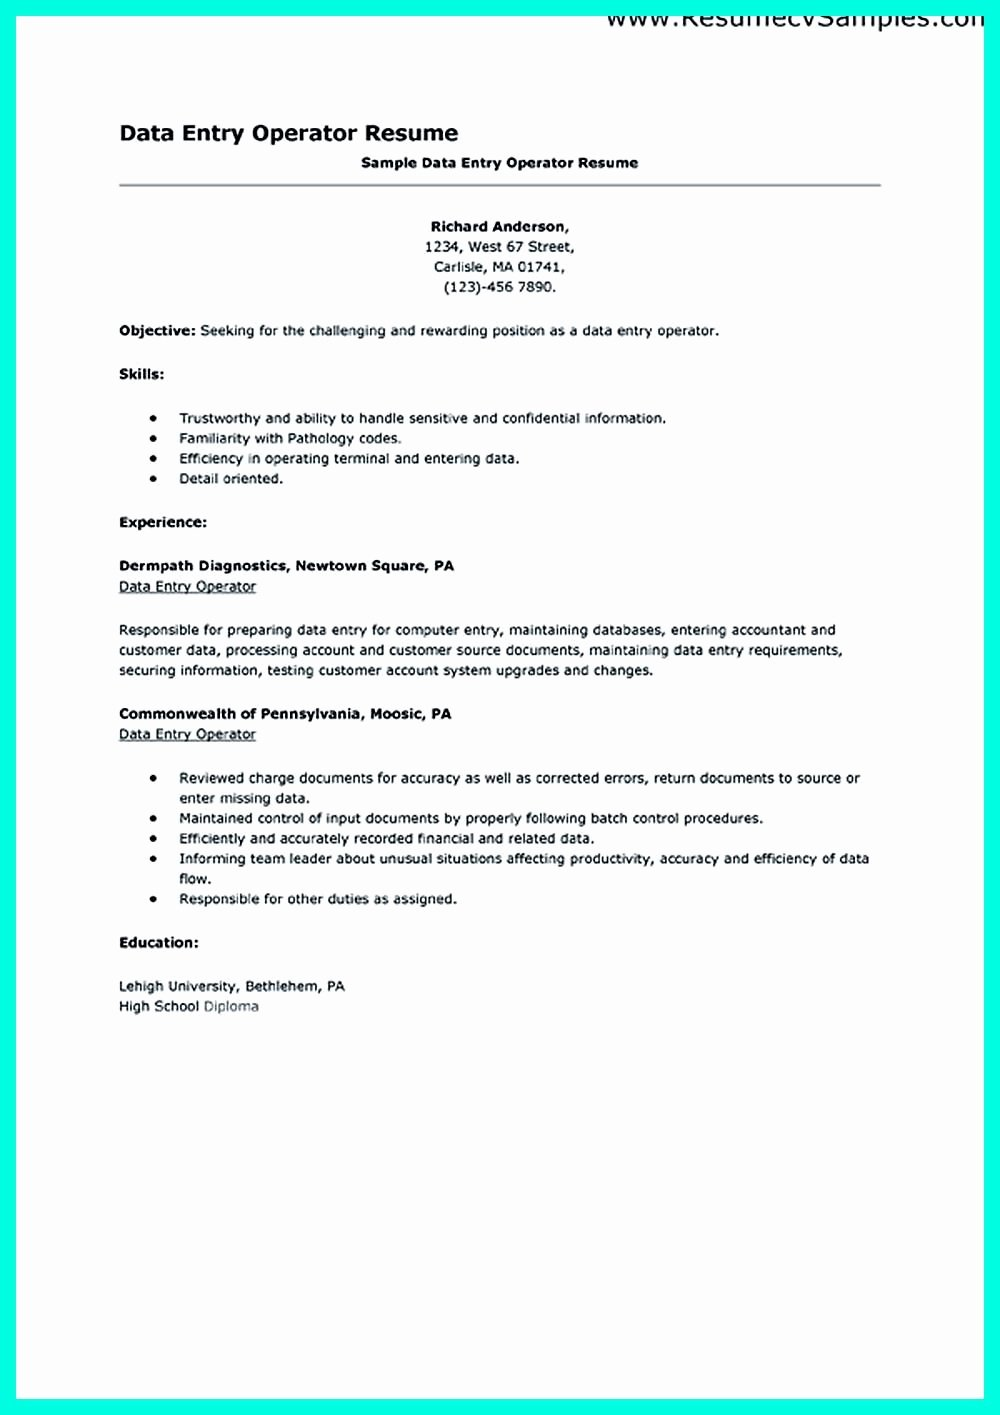 Data Entry Specialist Resume Resume Ideas